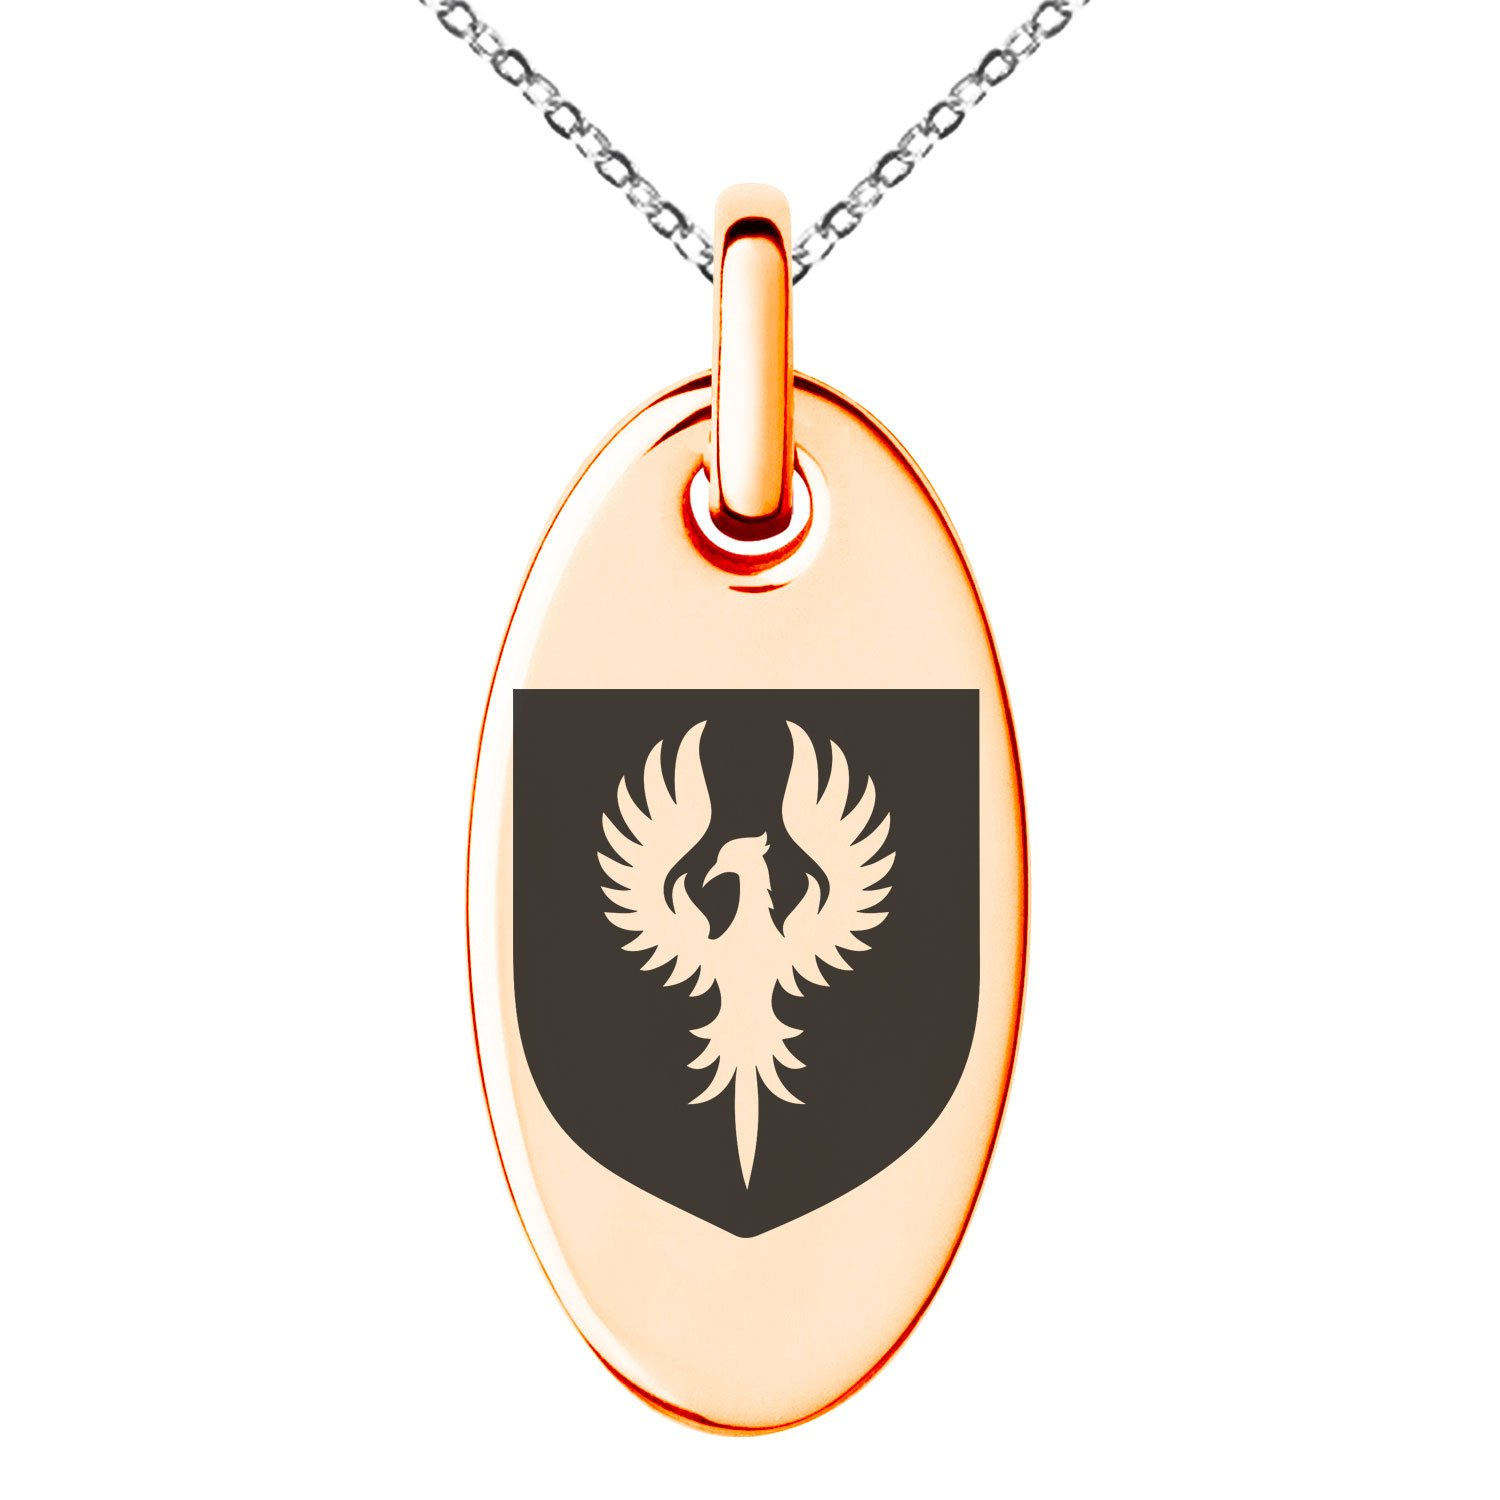 Tioneer Rose Gold Plated Stainless Steel Phoenix Resurrection Coat of Arms Shield Symbol Engraved Small Oval Charm Pendant Necklace